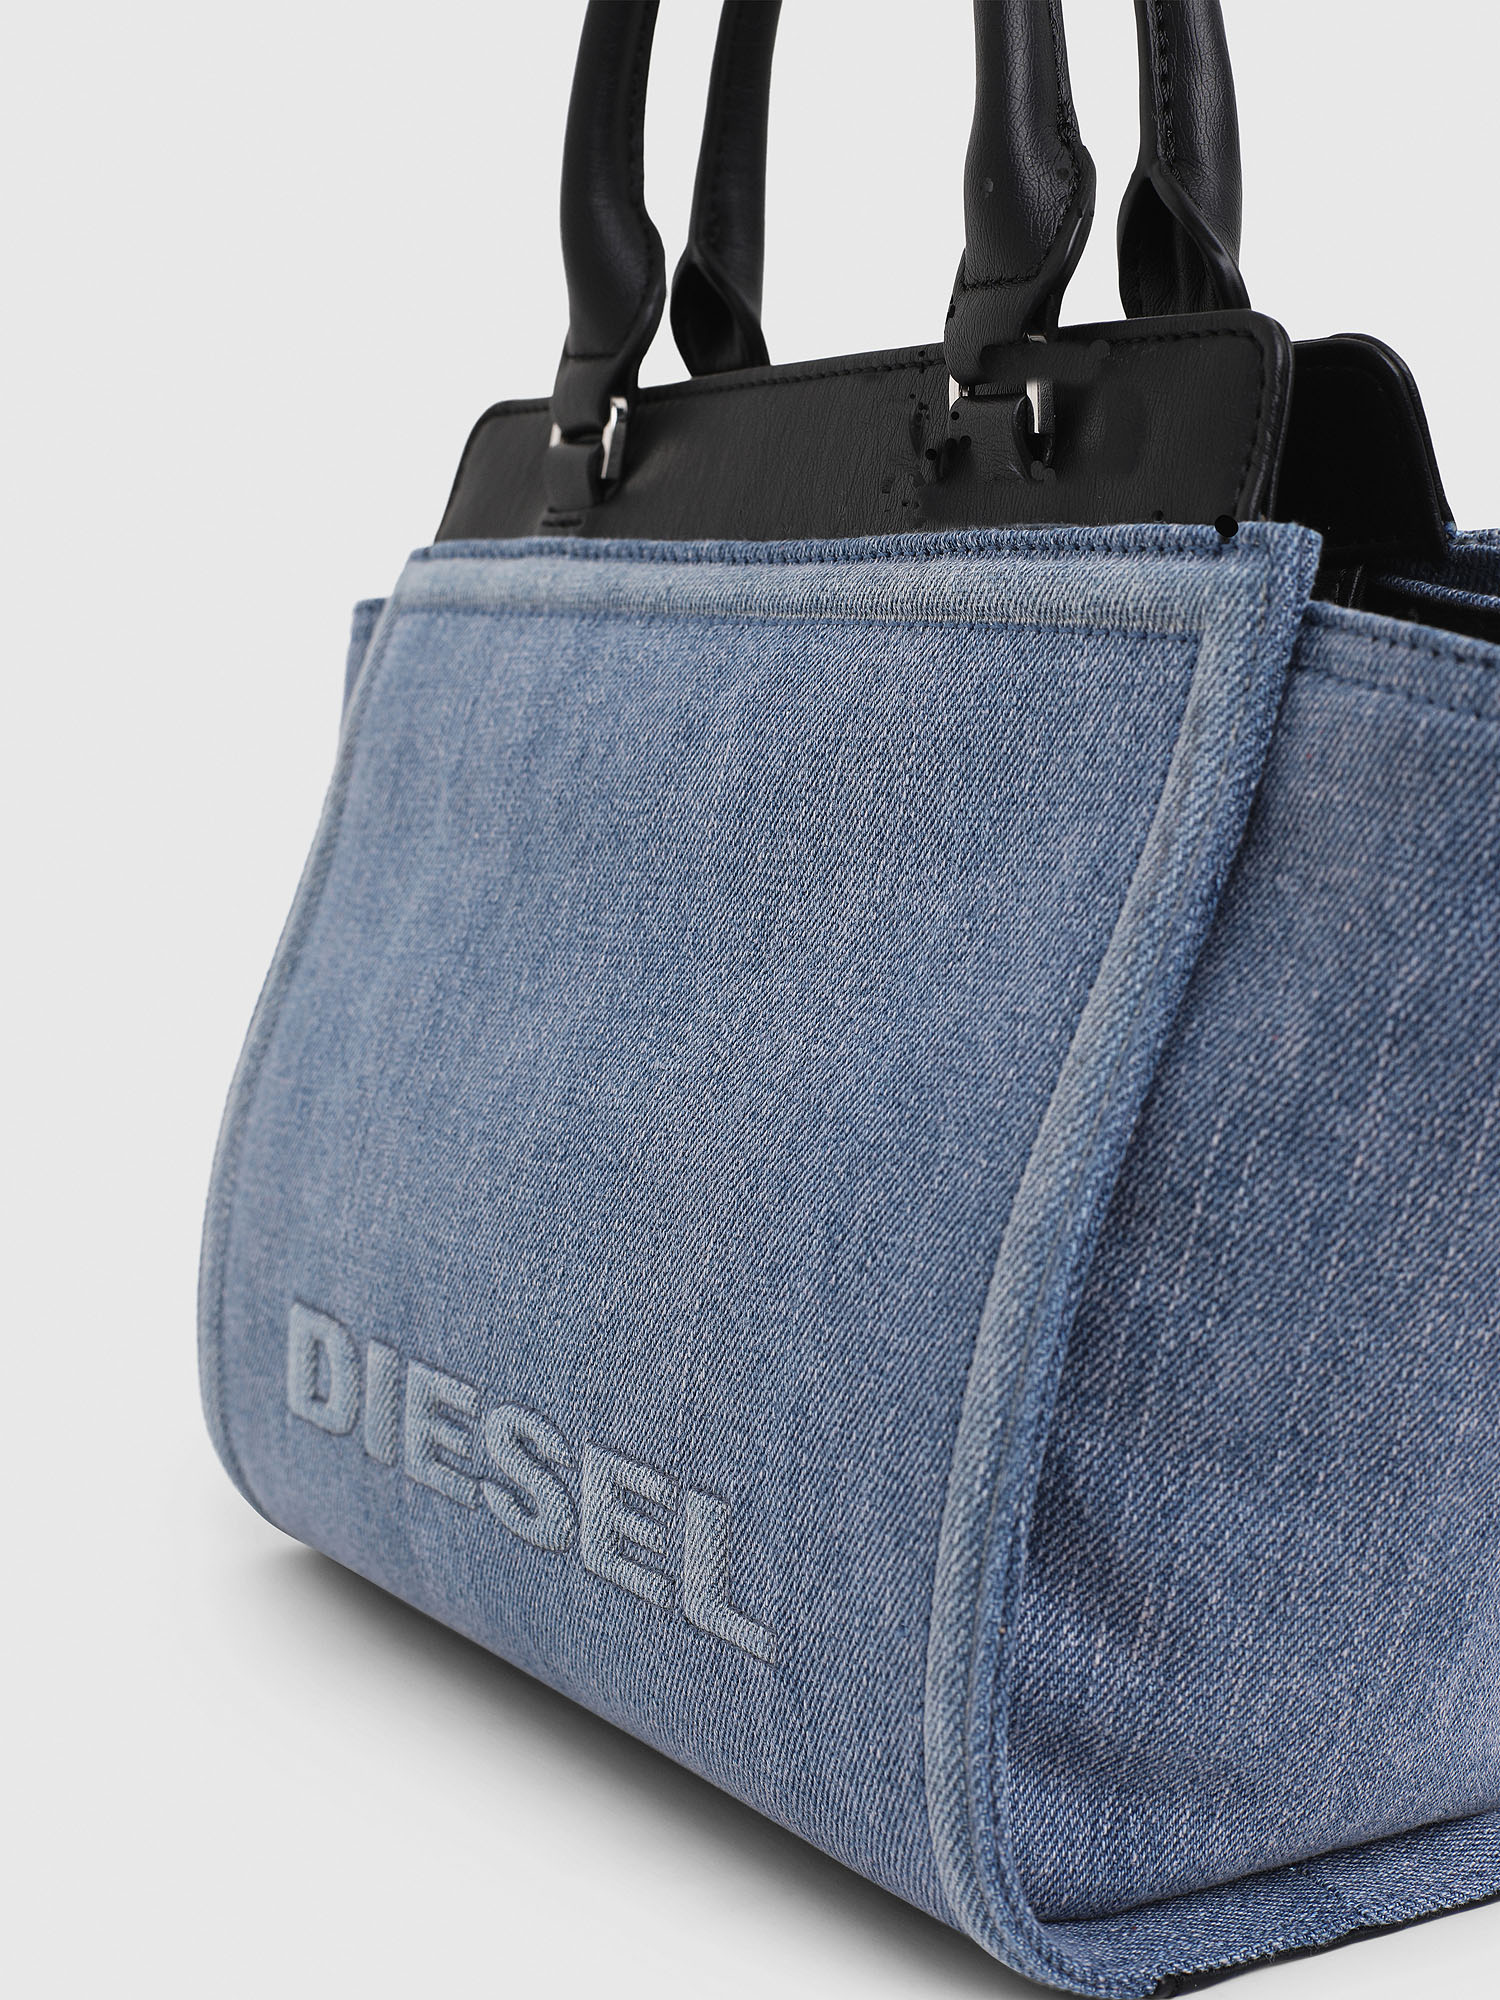 Diesel - BADIA,  - Satchels and Handbags - Image 4